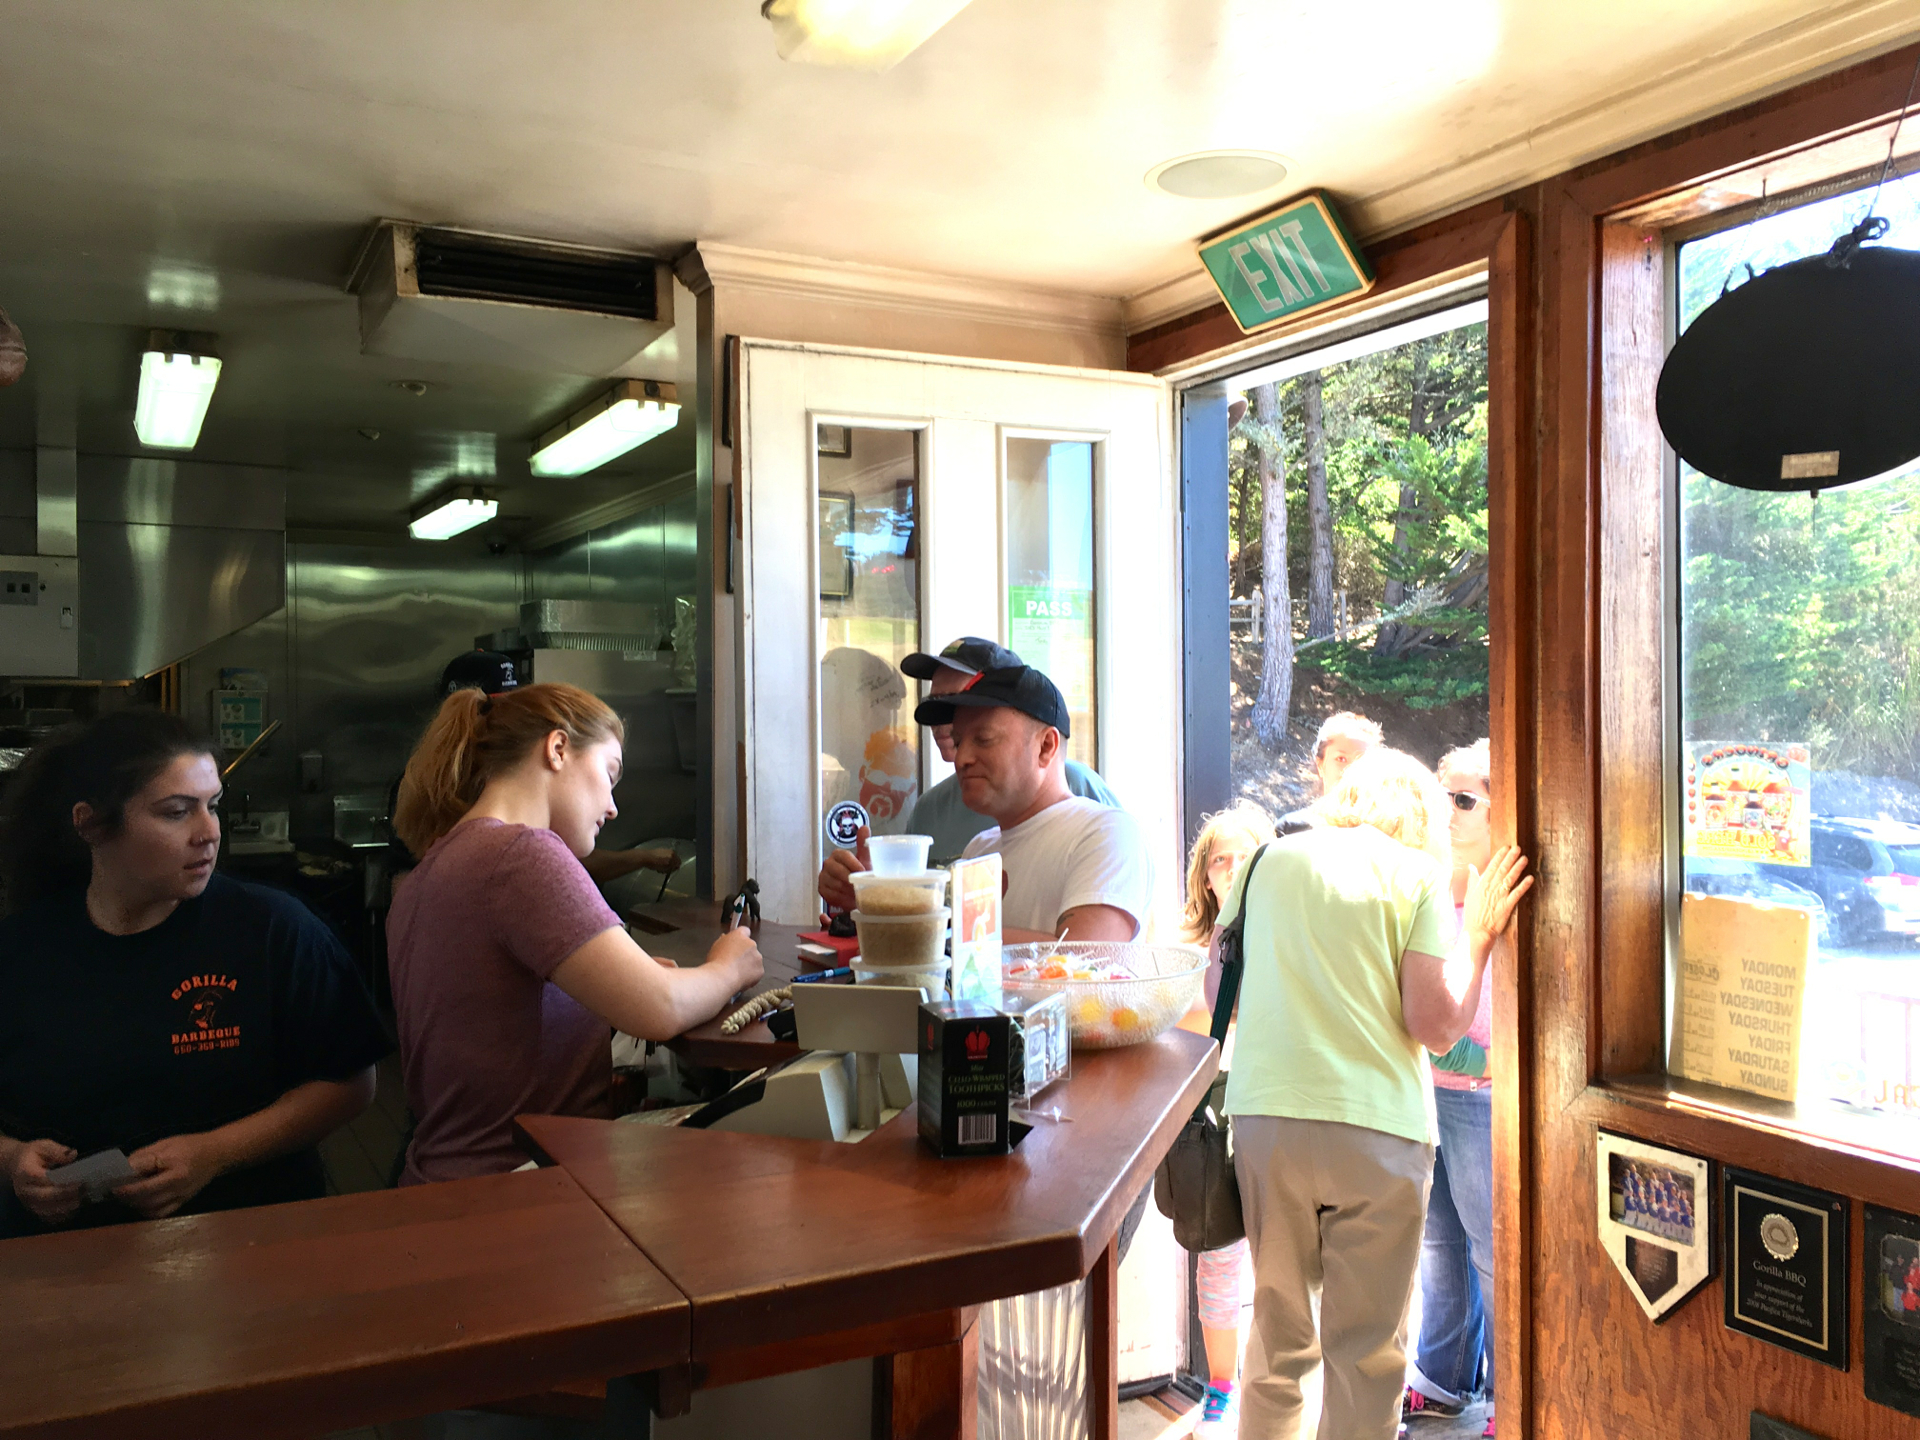 Customers lined up to order at Gorilla BBQ in Pacifica.